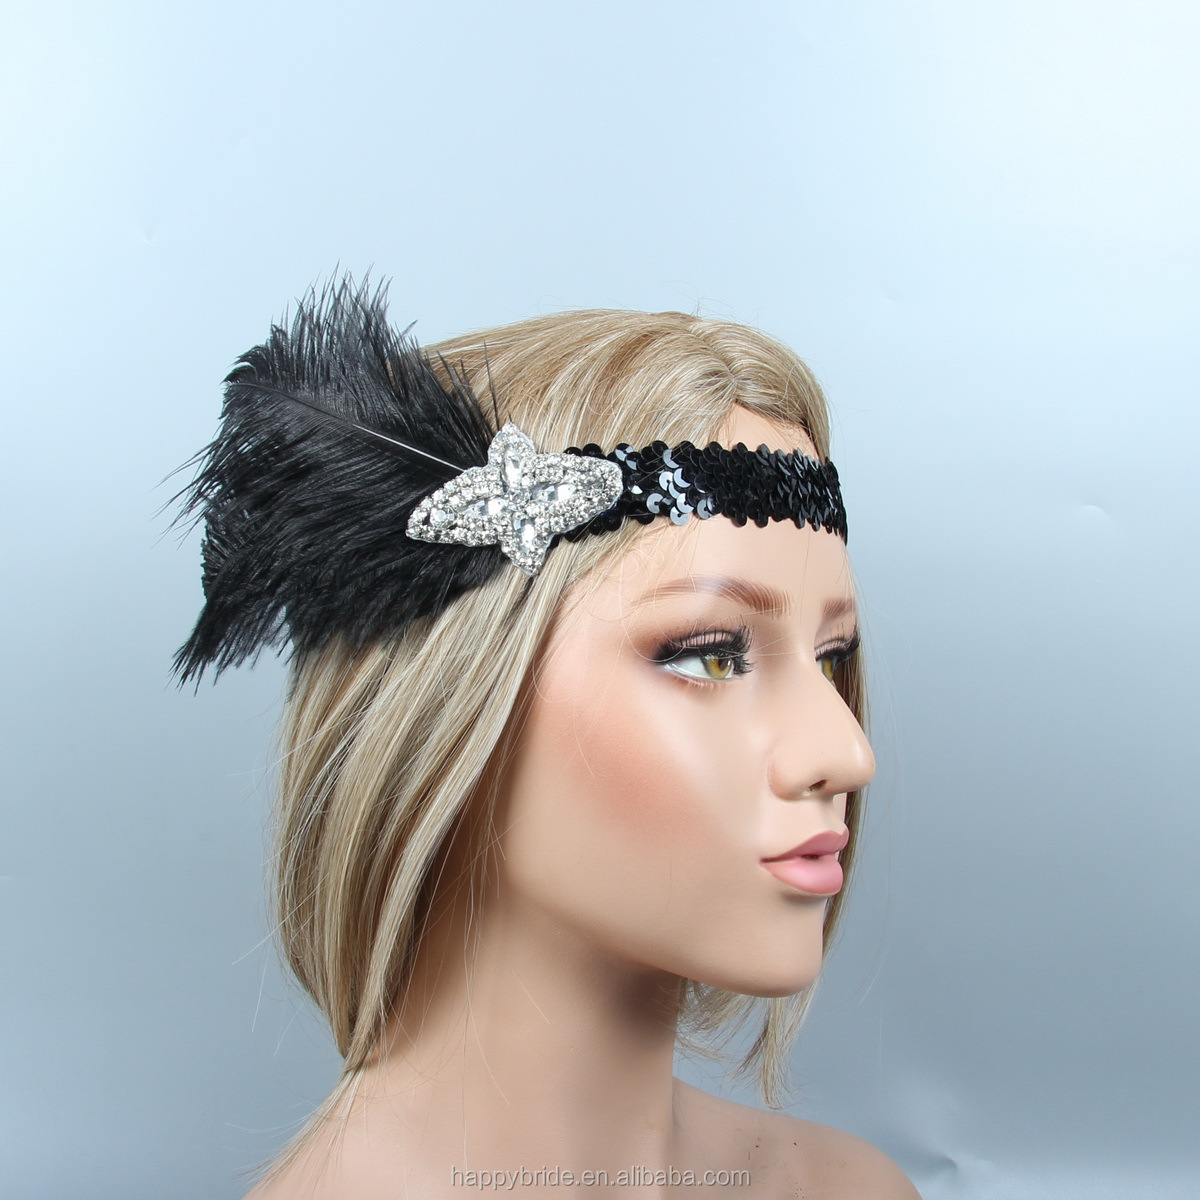 Lowosaiwor Black Ostrich Feather Headband 1920s Great Gatsby Headpiece with Crystal Applique Handmade HD0057